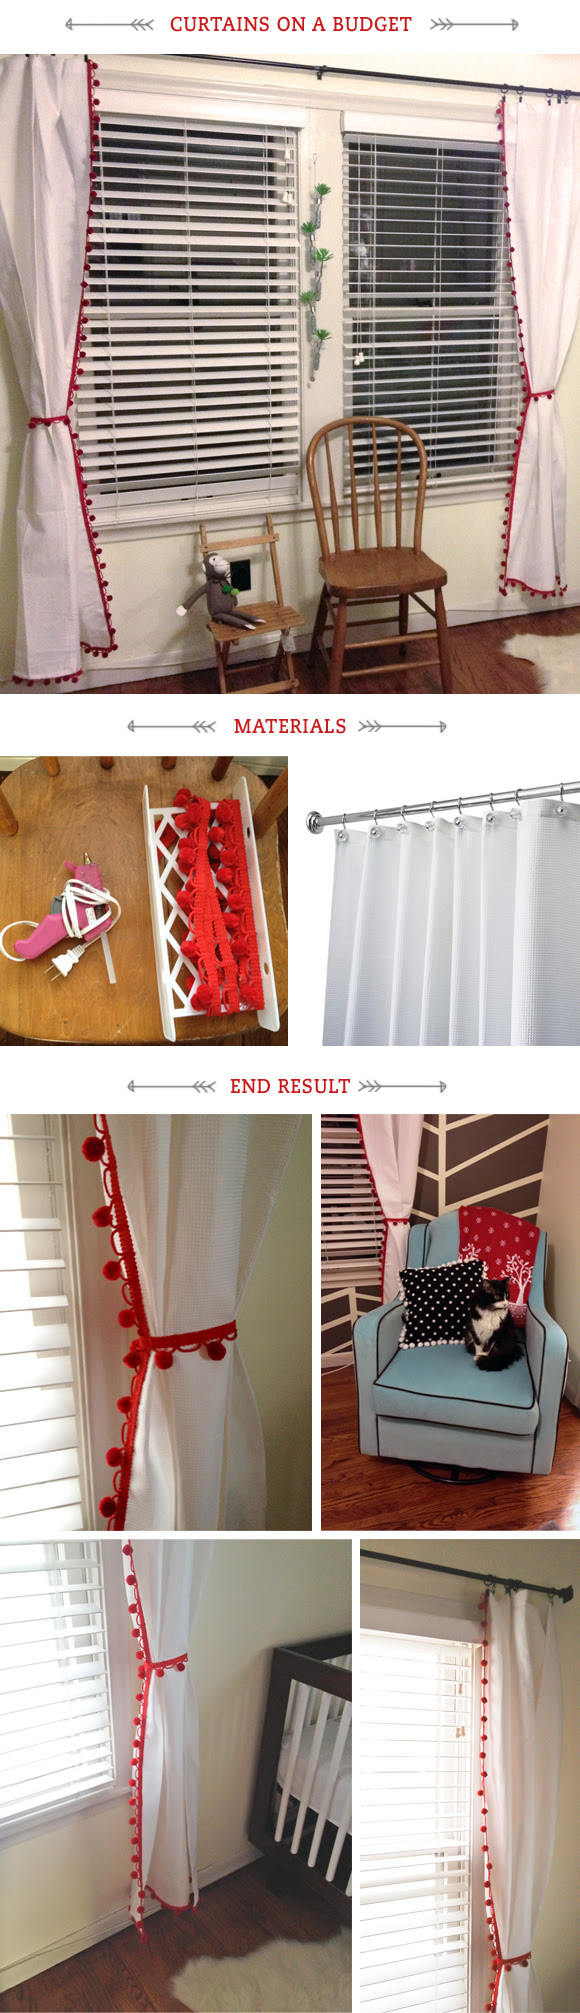 nursery: diy curtains | amalia misc.